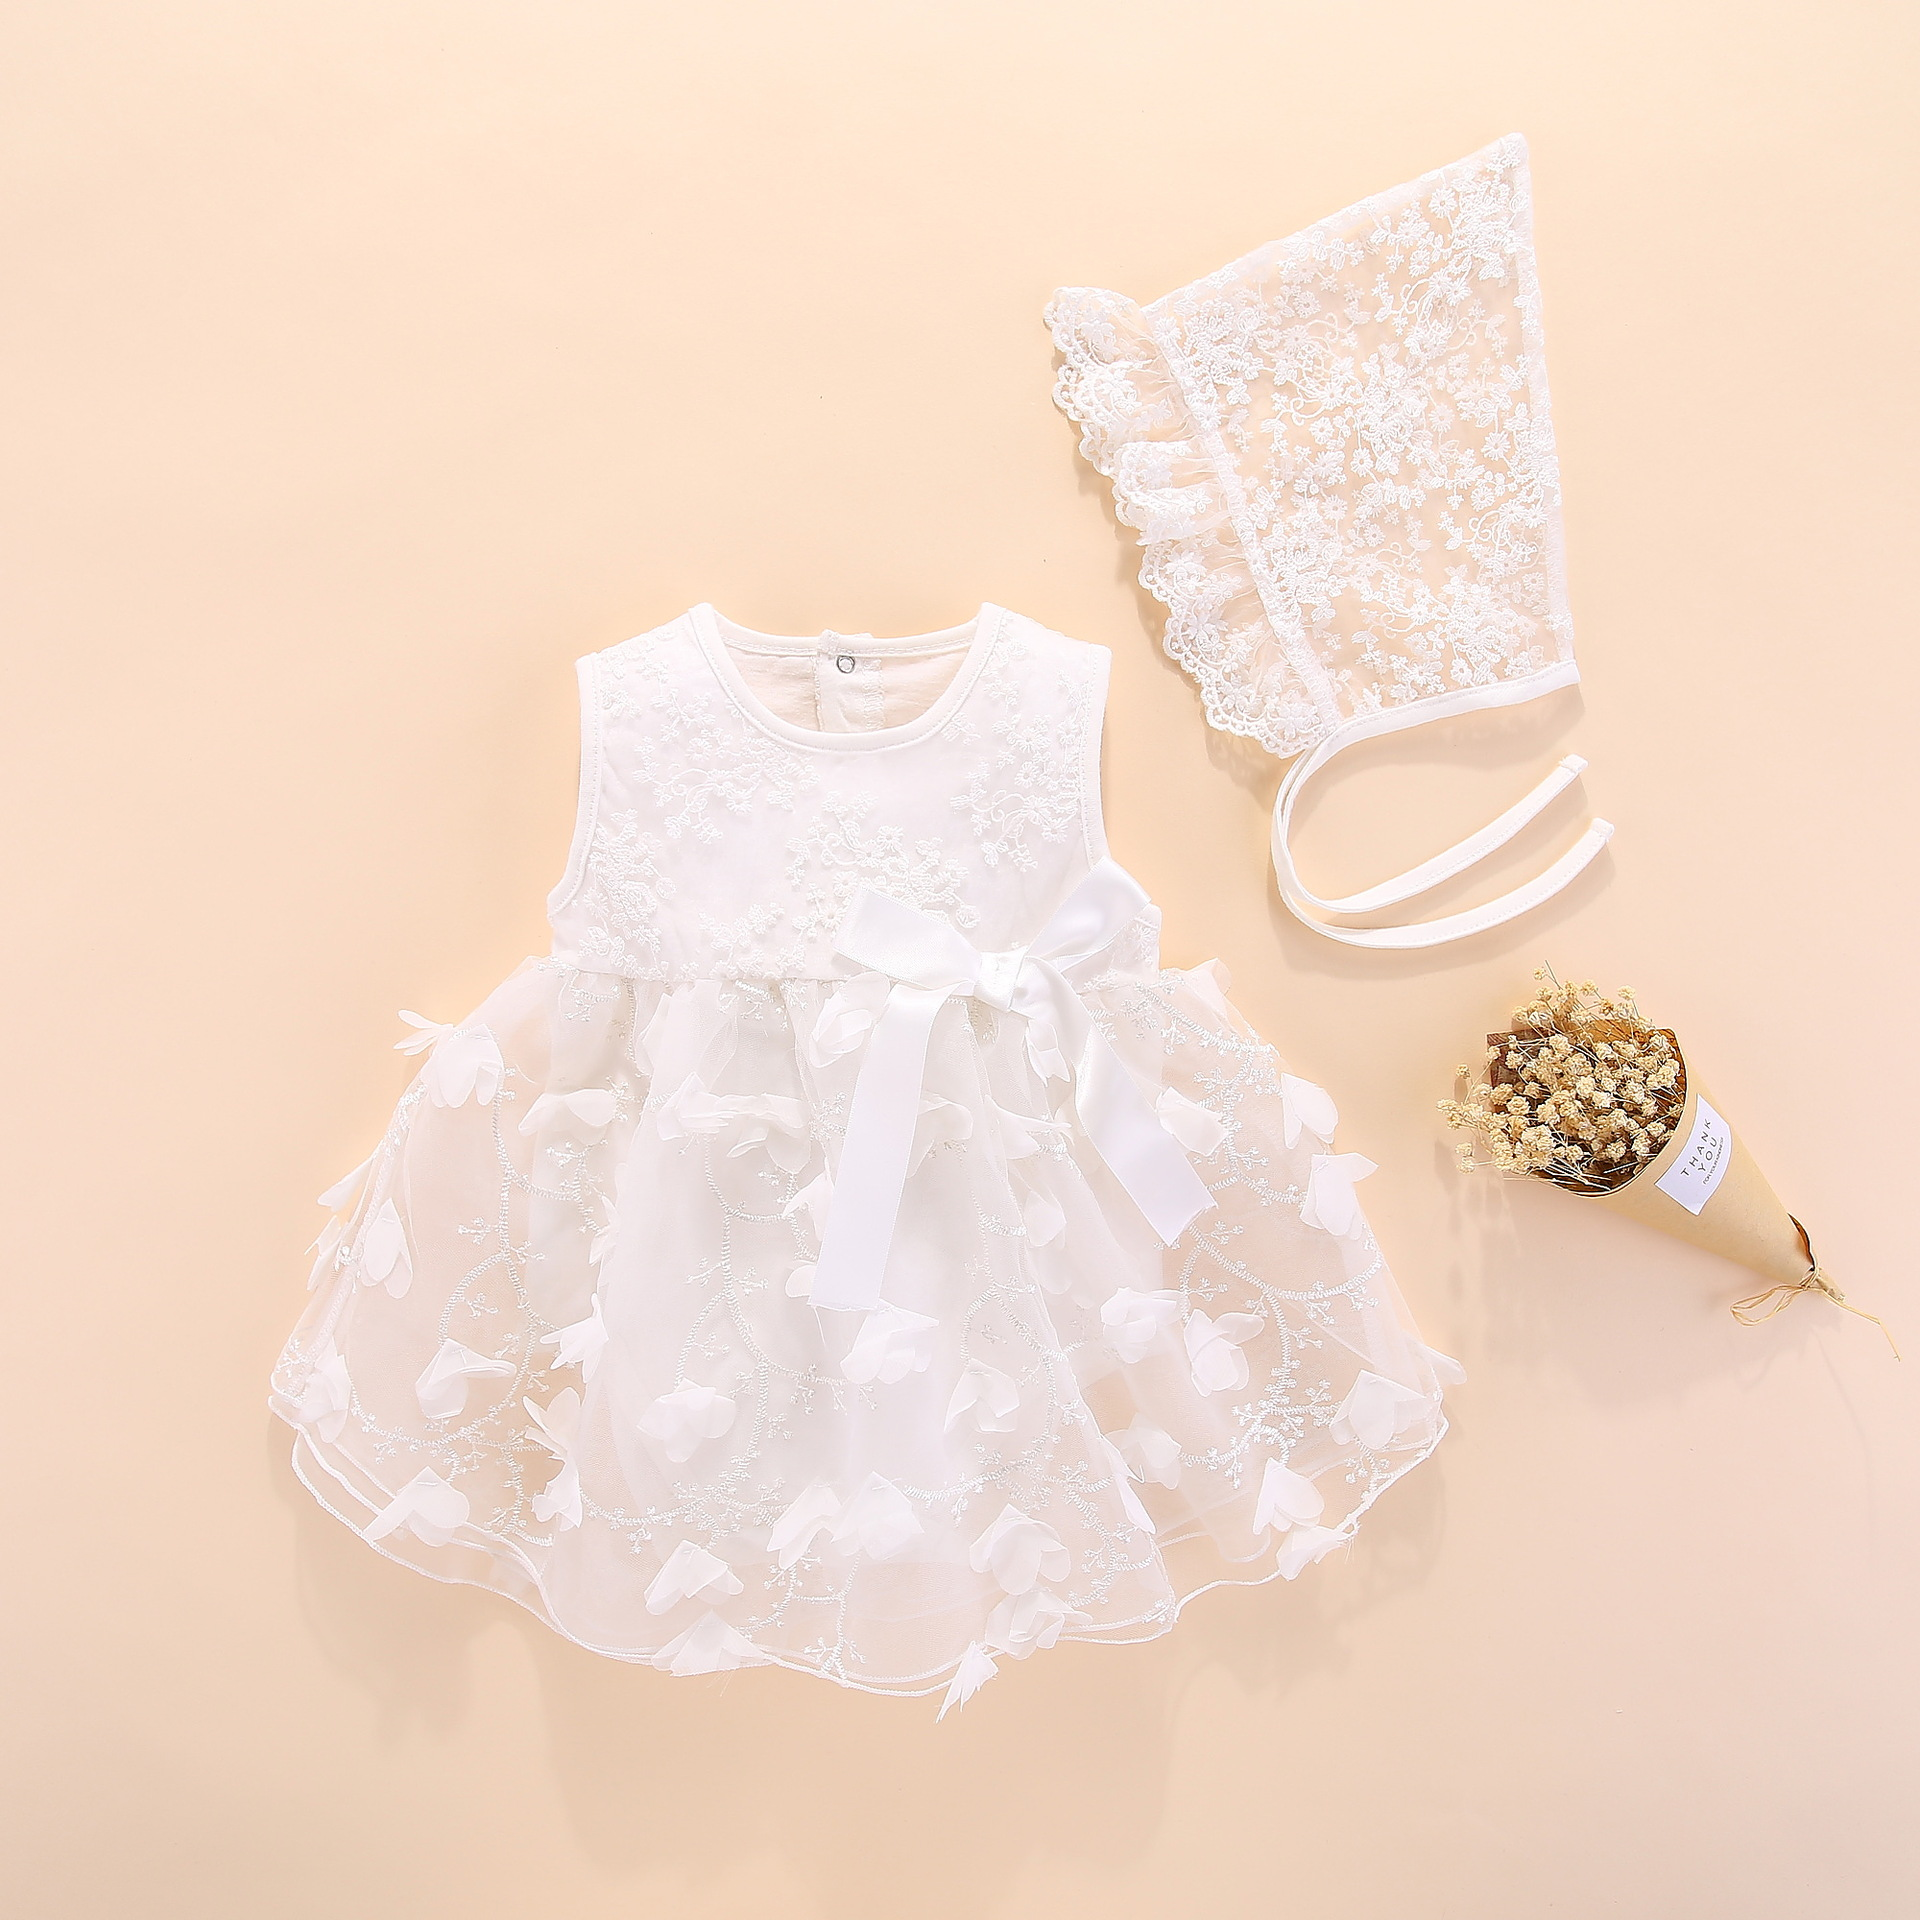 b3988a1624dc ⊱ Online Wholesale dress for 3 months baby girl and get free ...